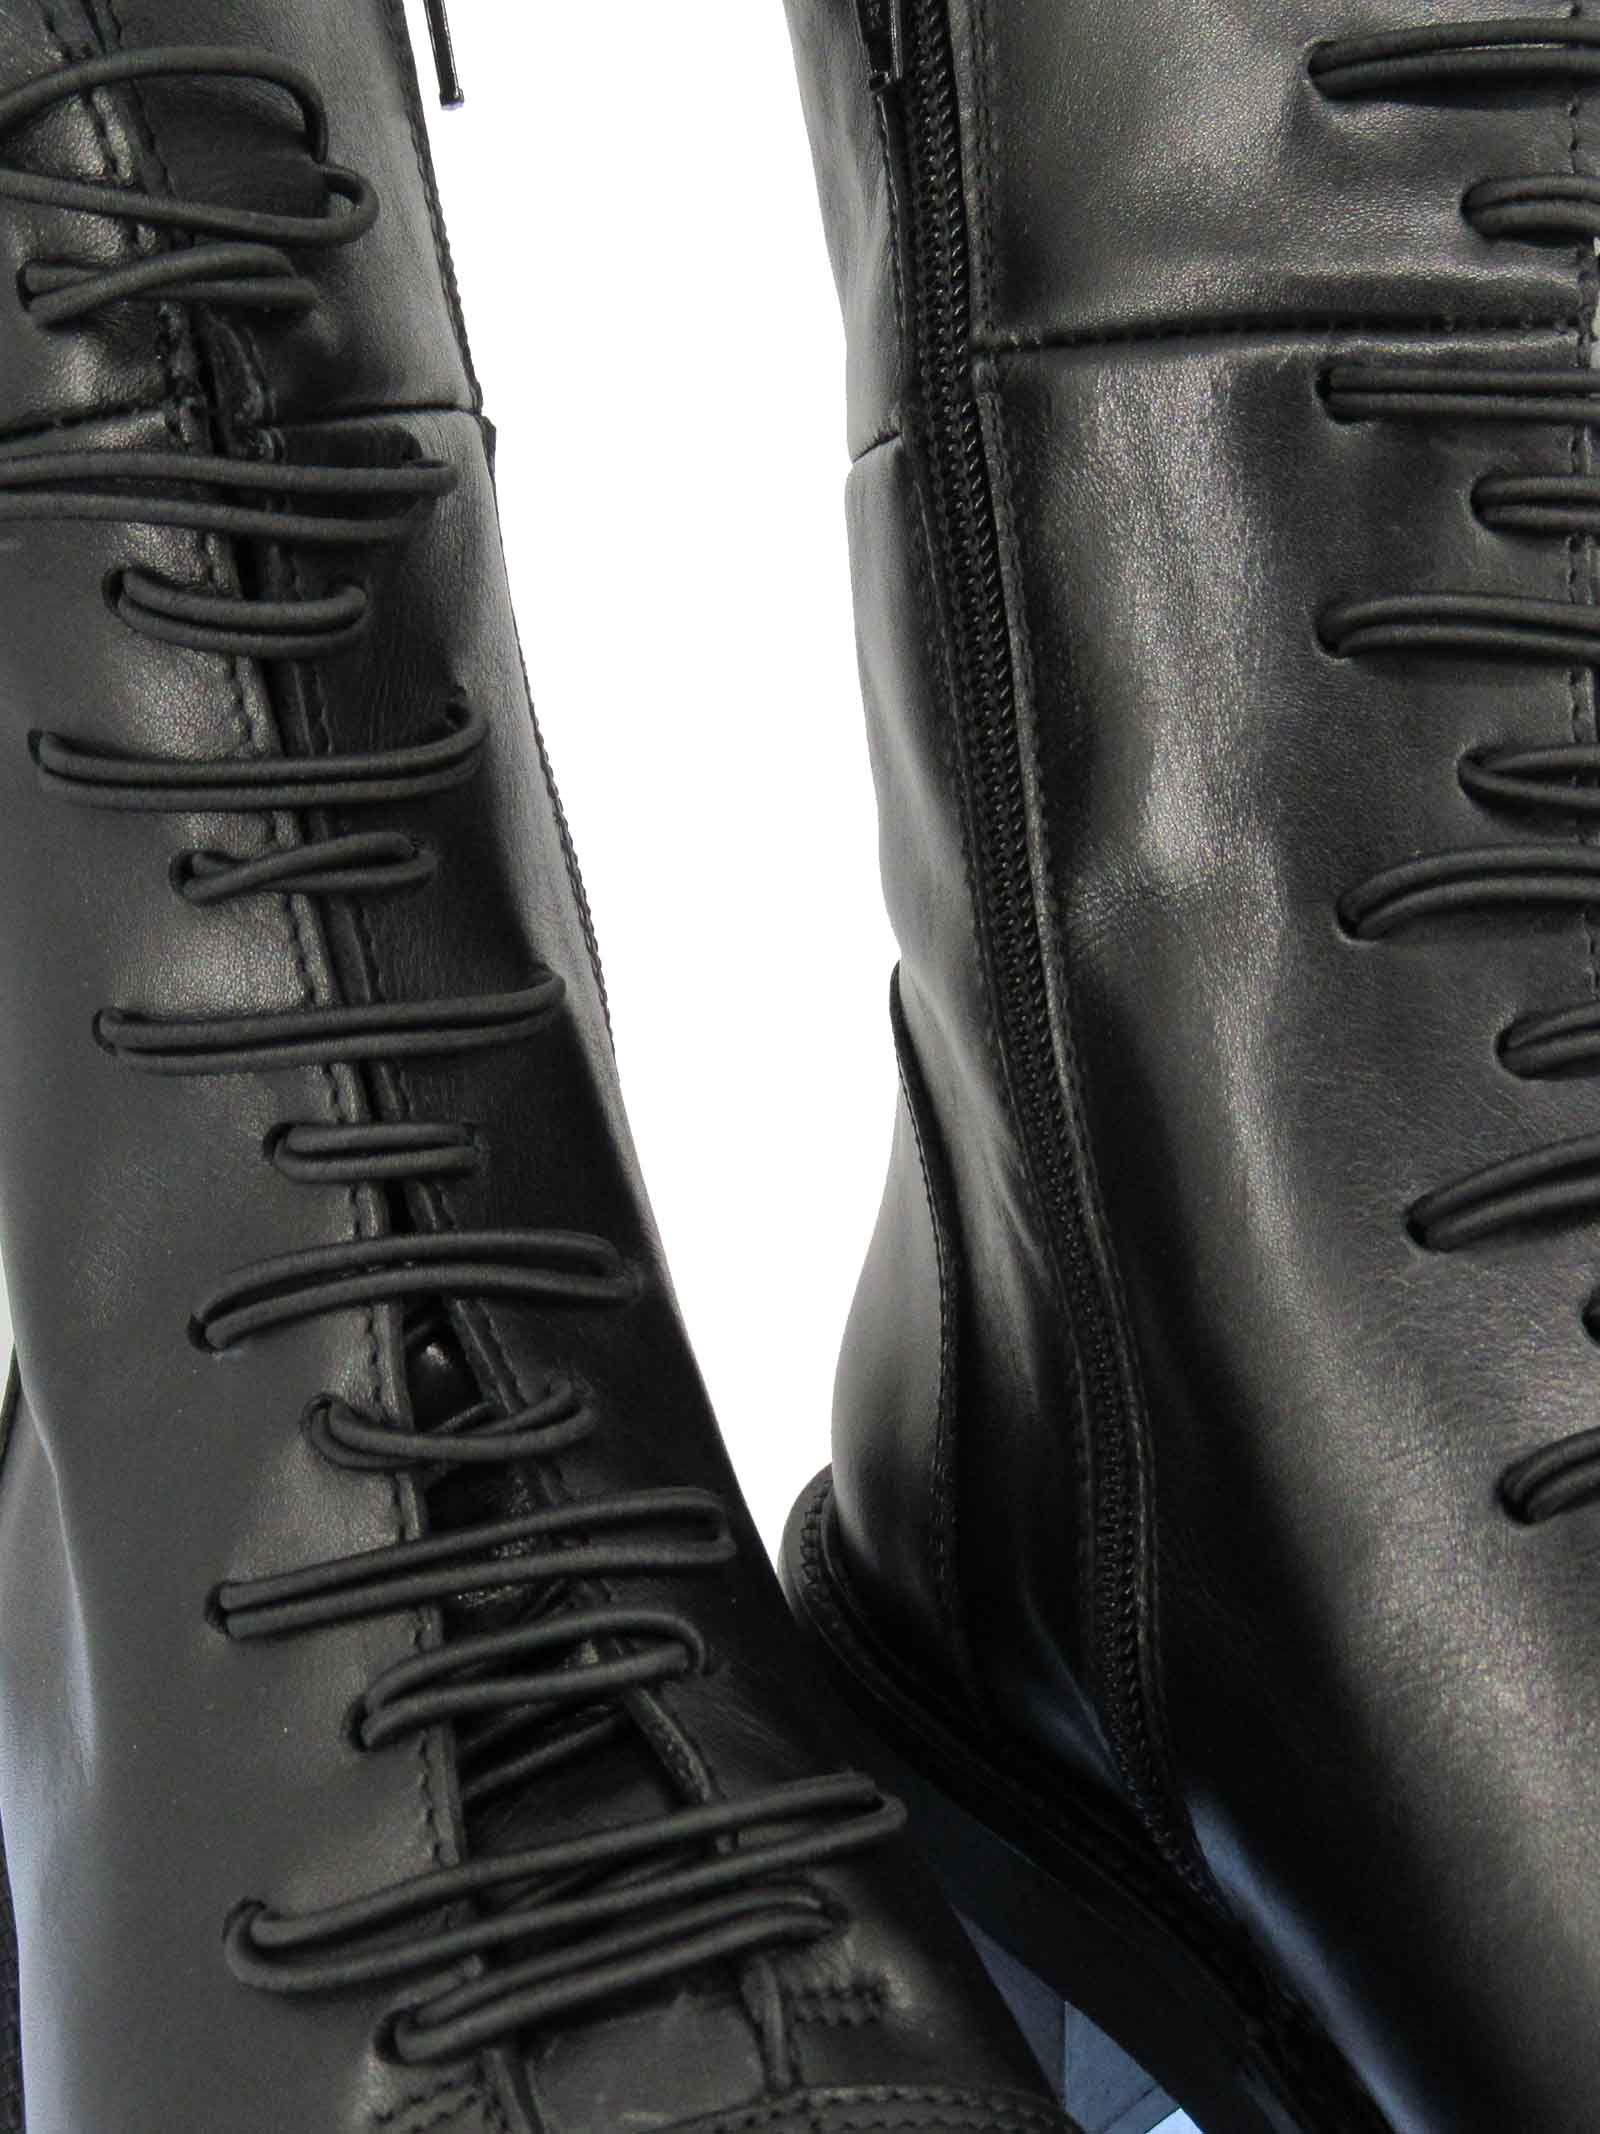 Women's Shoes Ankle Boots in Black Leather with Elastics and Buttons with Side Zip and Rubber Sole Tattoo | Ankle Boots | GAIA 6001